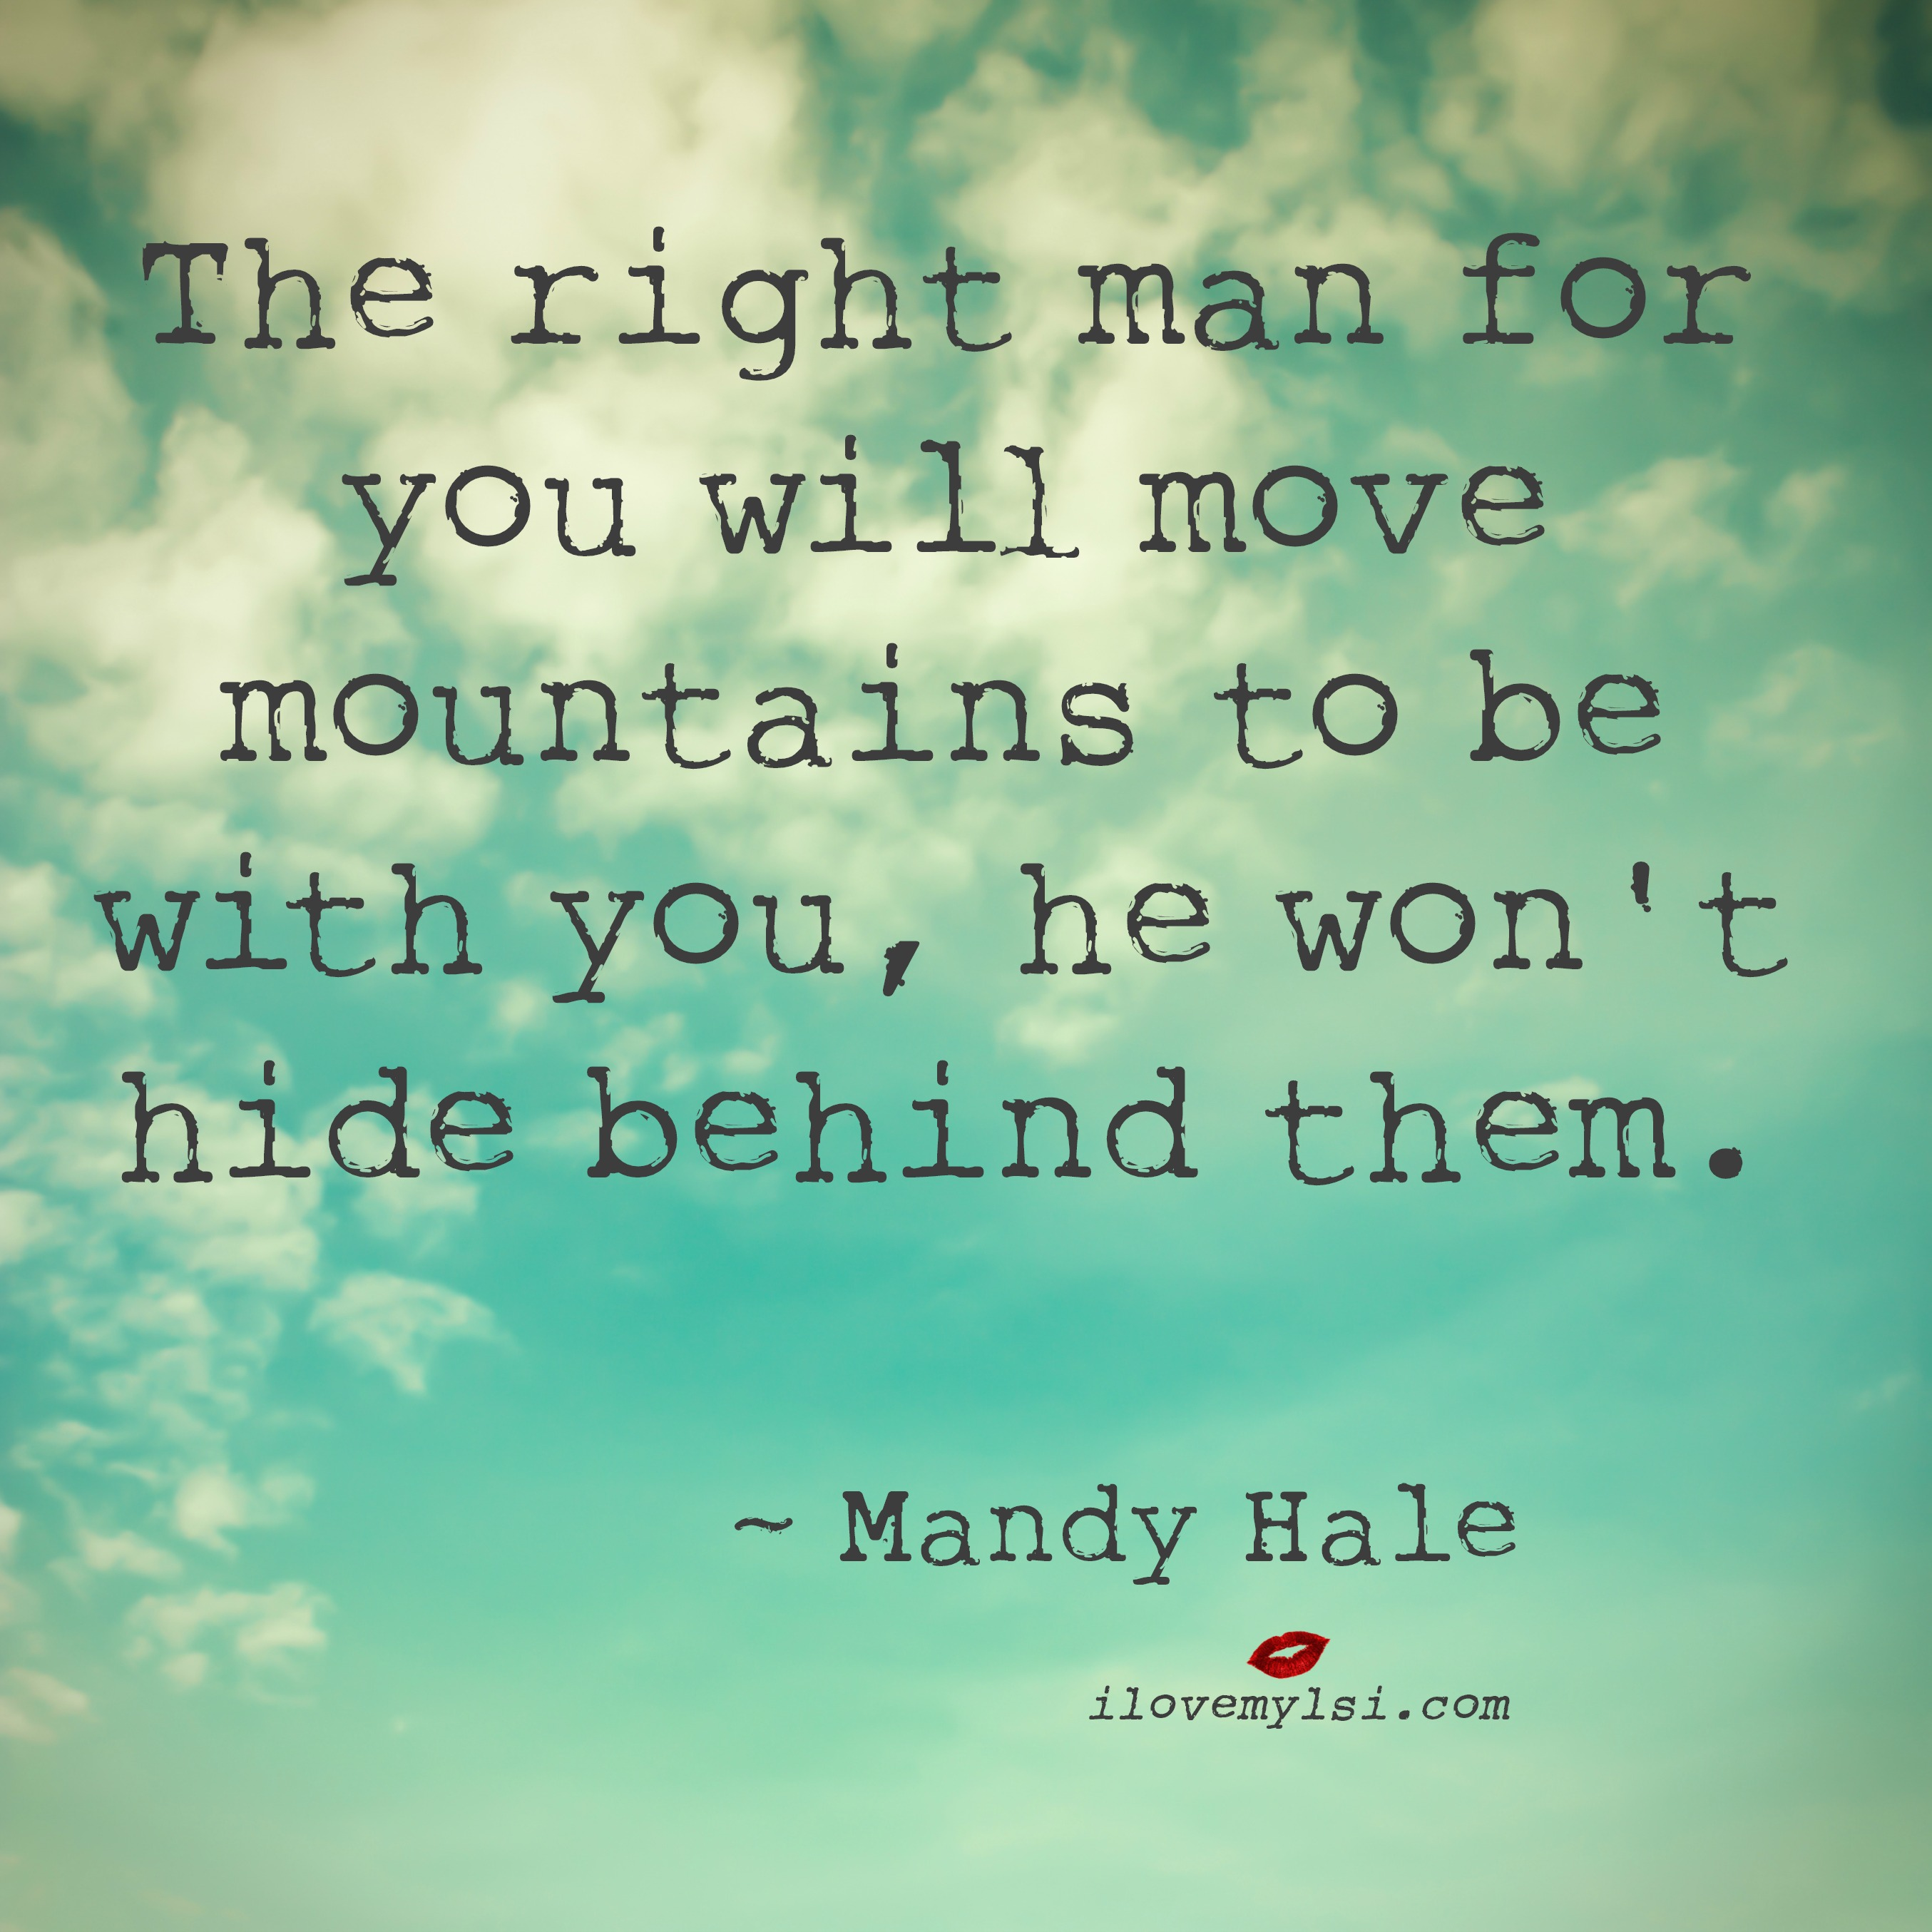 Mandy Hale Quotes Mandy Hale Quotes Archives  I Love My Lsi